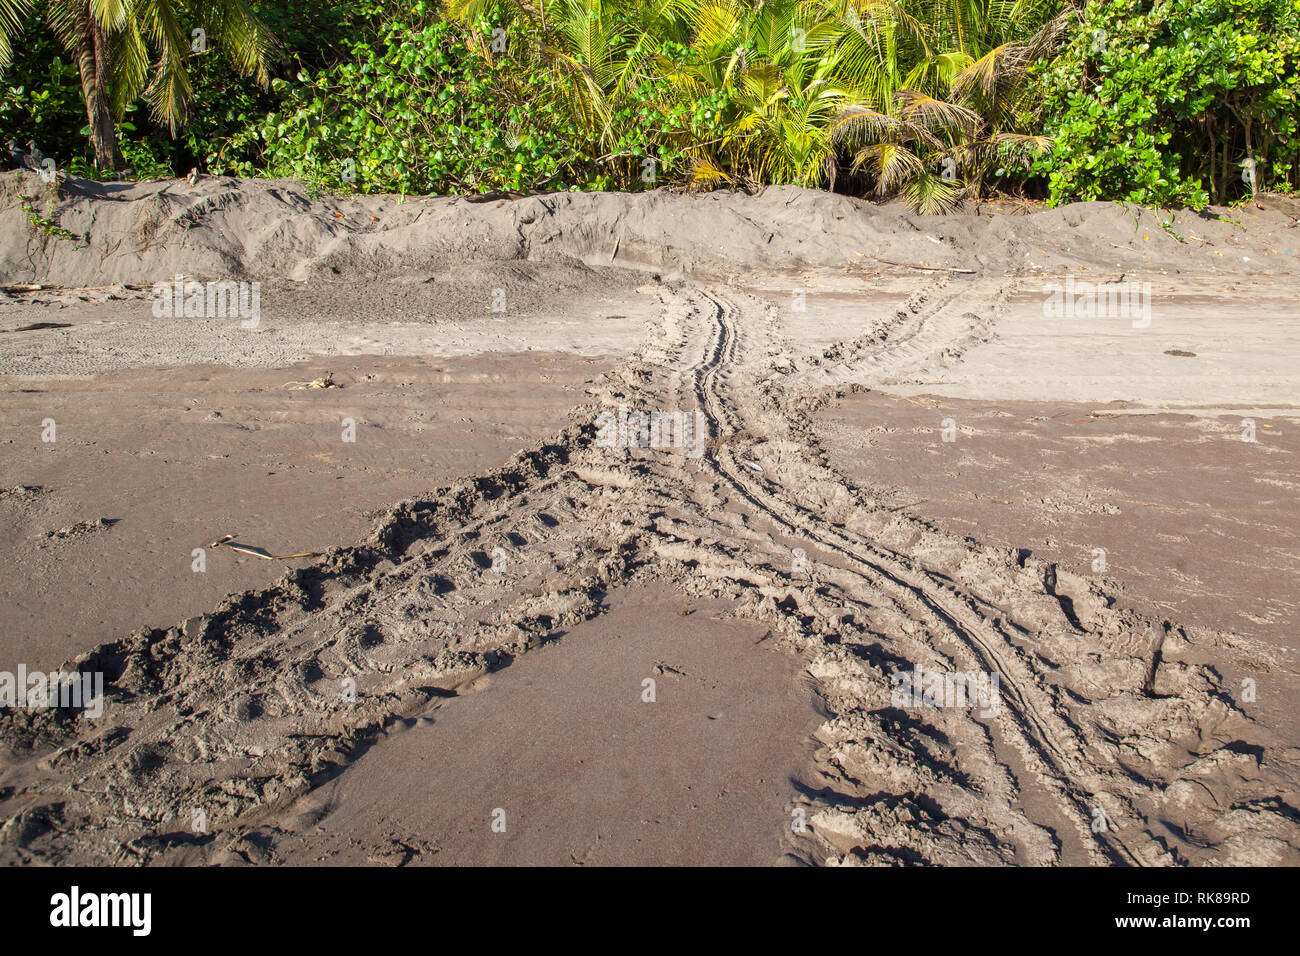 Sea turtle tracks on the beach at Tortuguero National Park in Costa Rica - Stock Image